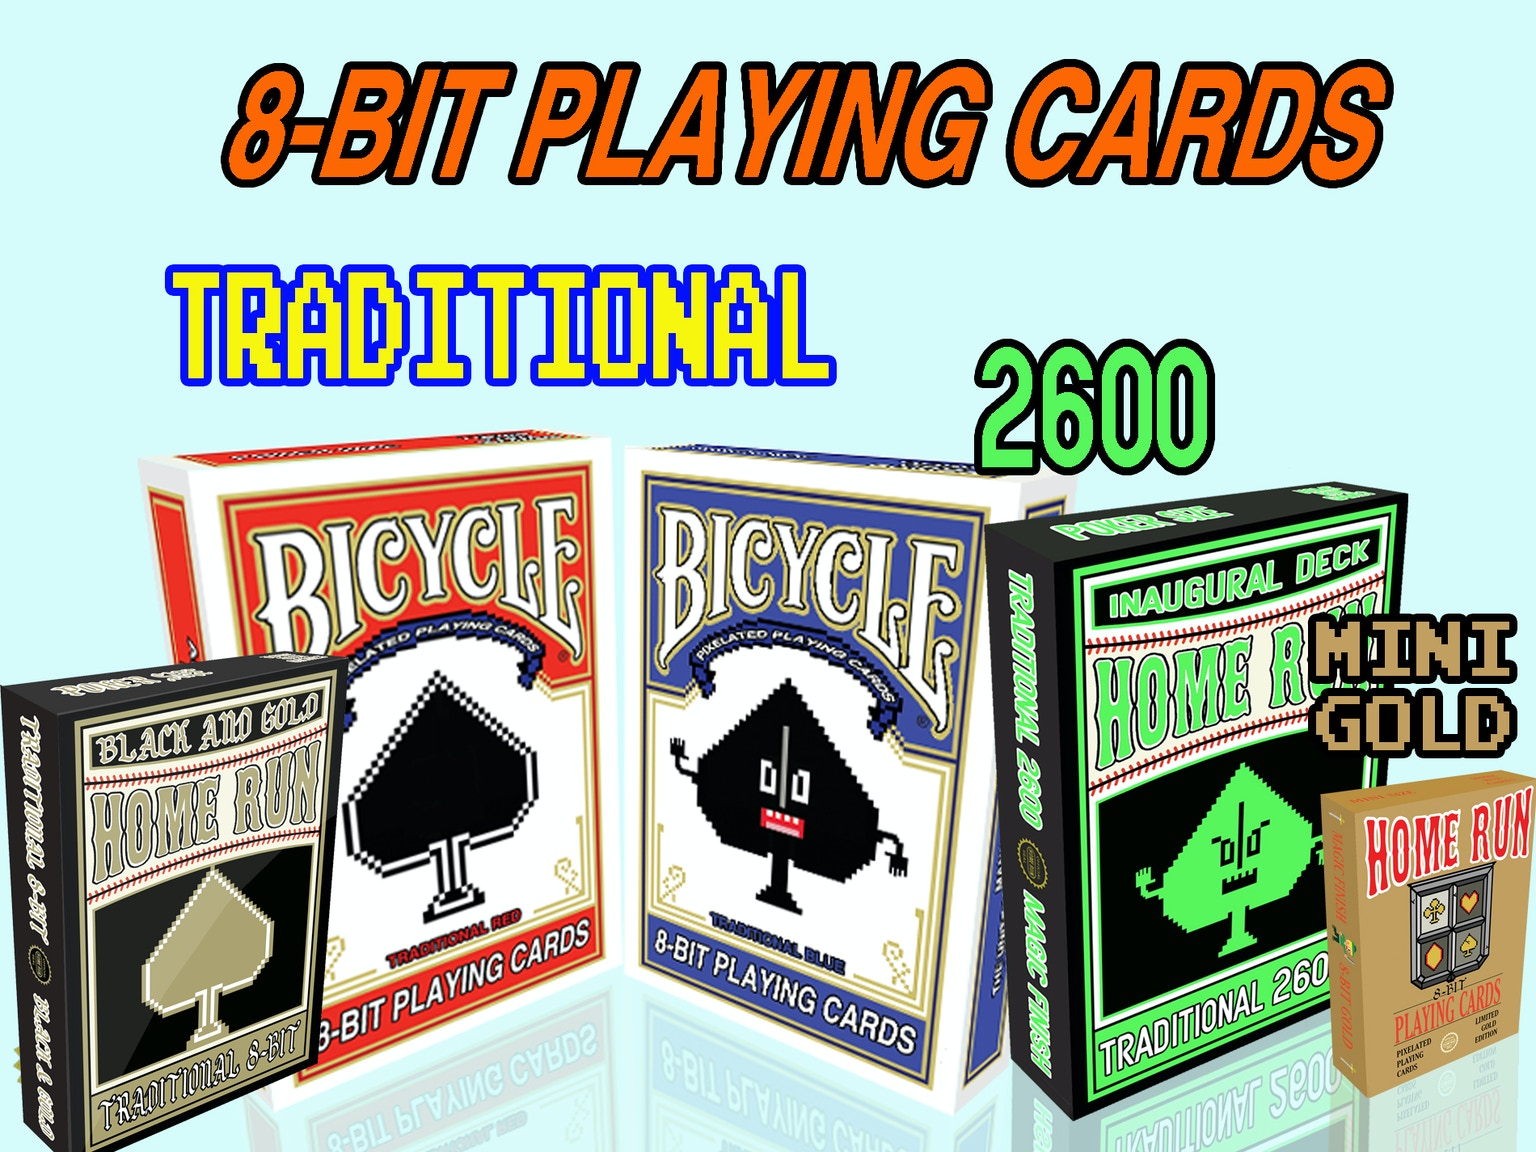 Kickstarter: Home Run Games' Bicycle 8-Bit Playing Card